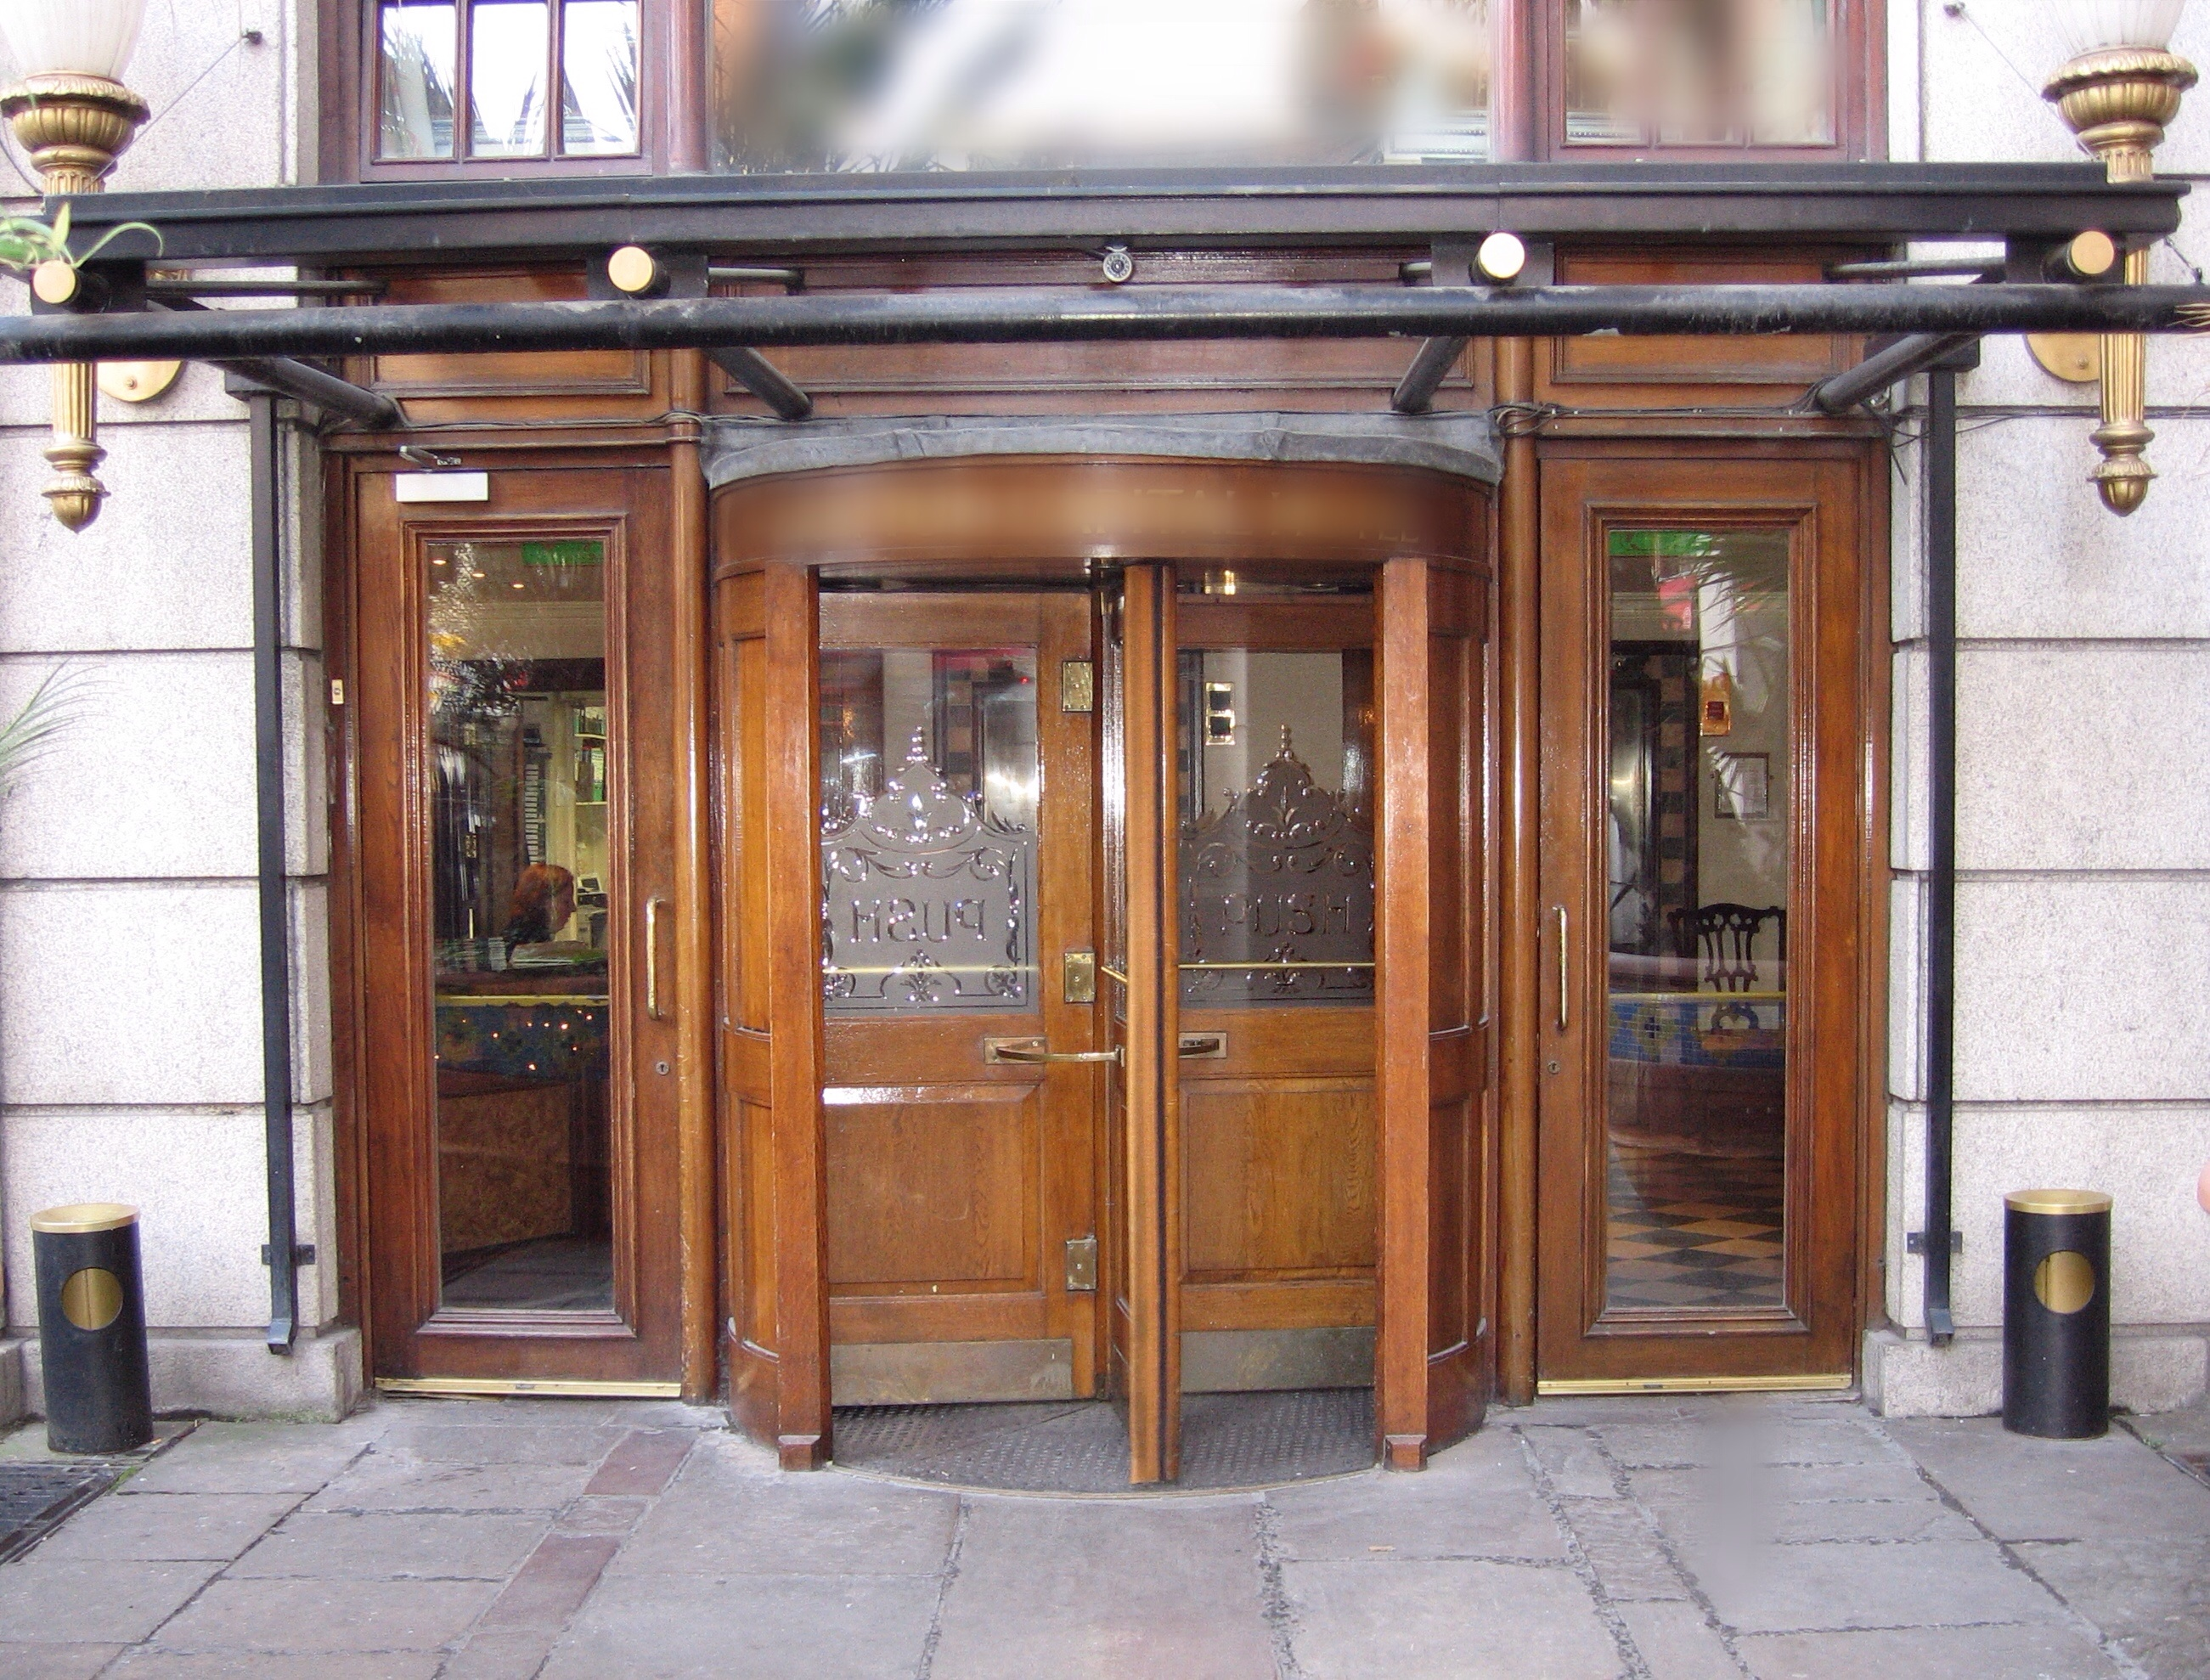 Revolving doors of Grafton Capital Hotel CC BY 2.0 Russell James Smith - originally posted to & The French Revolving Door; Radioactive Waste Bed: Nuclear Blown ...